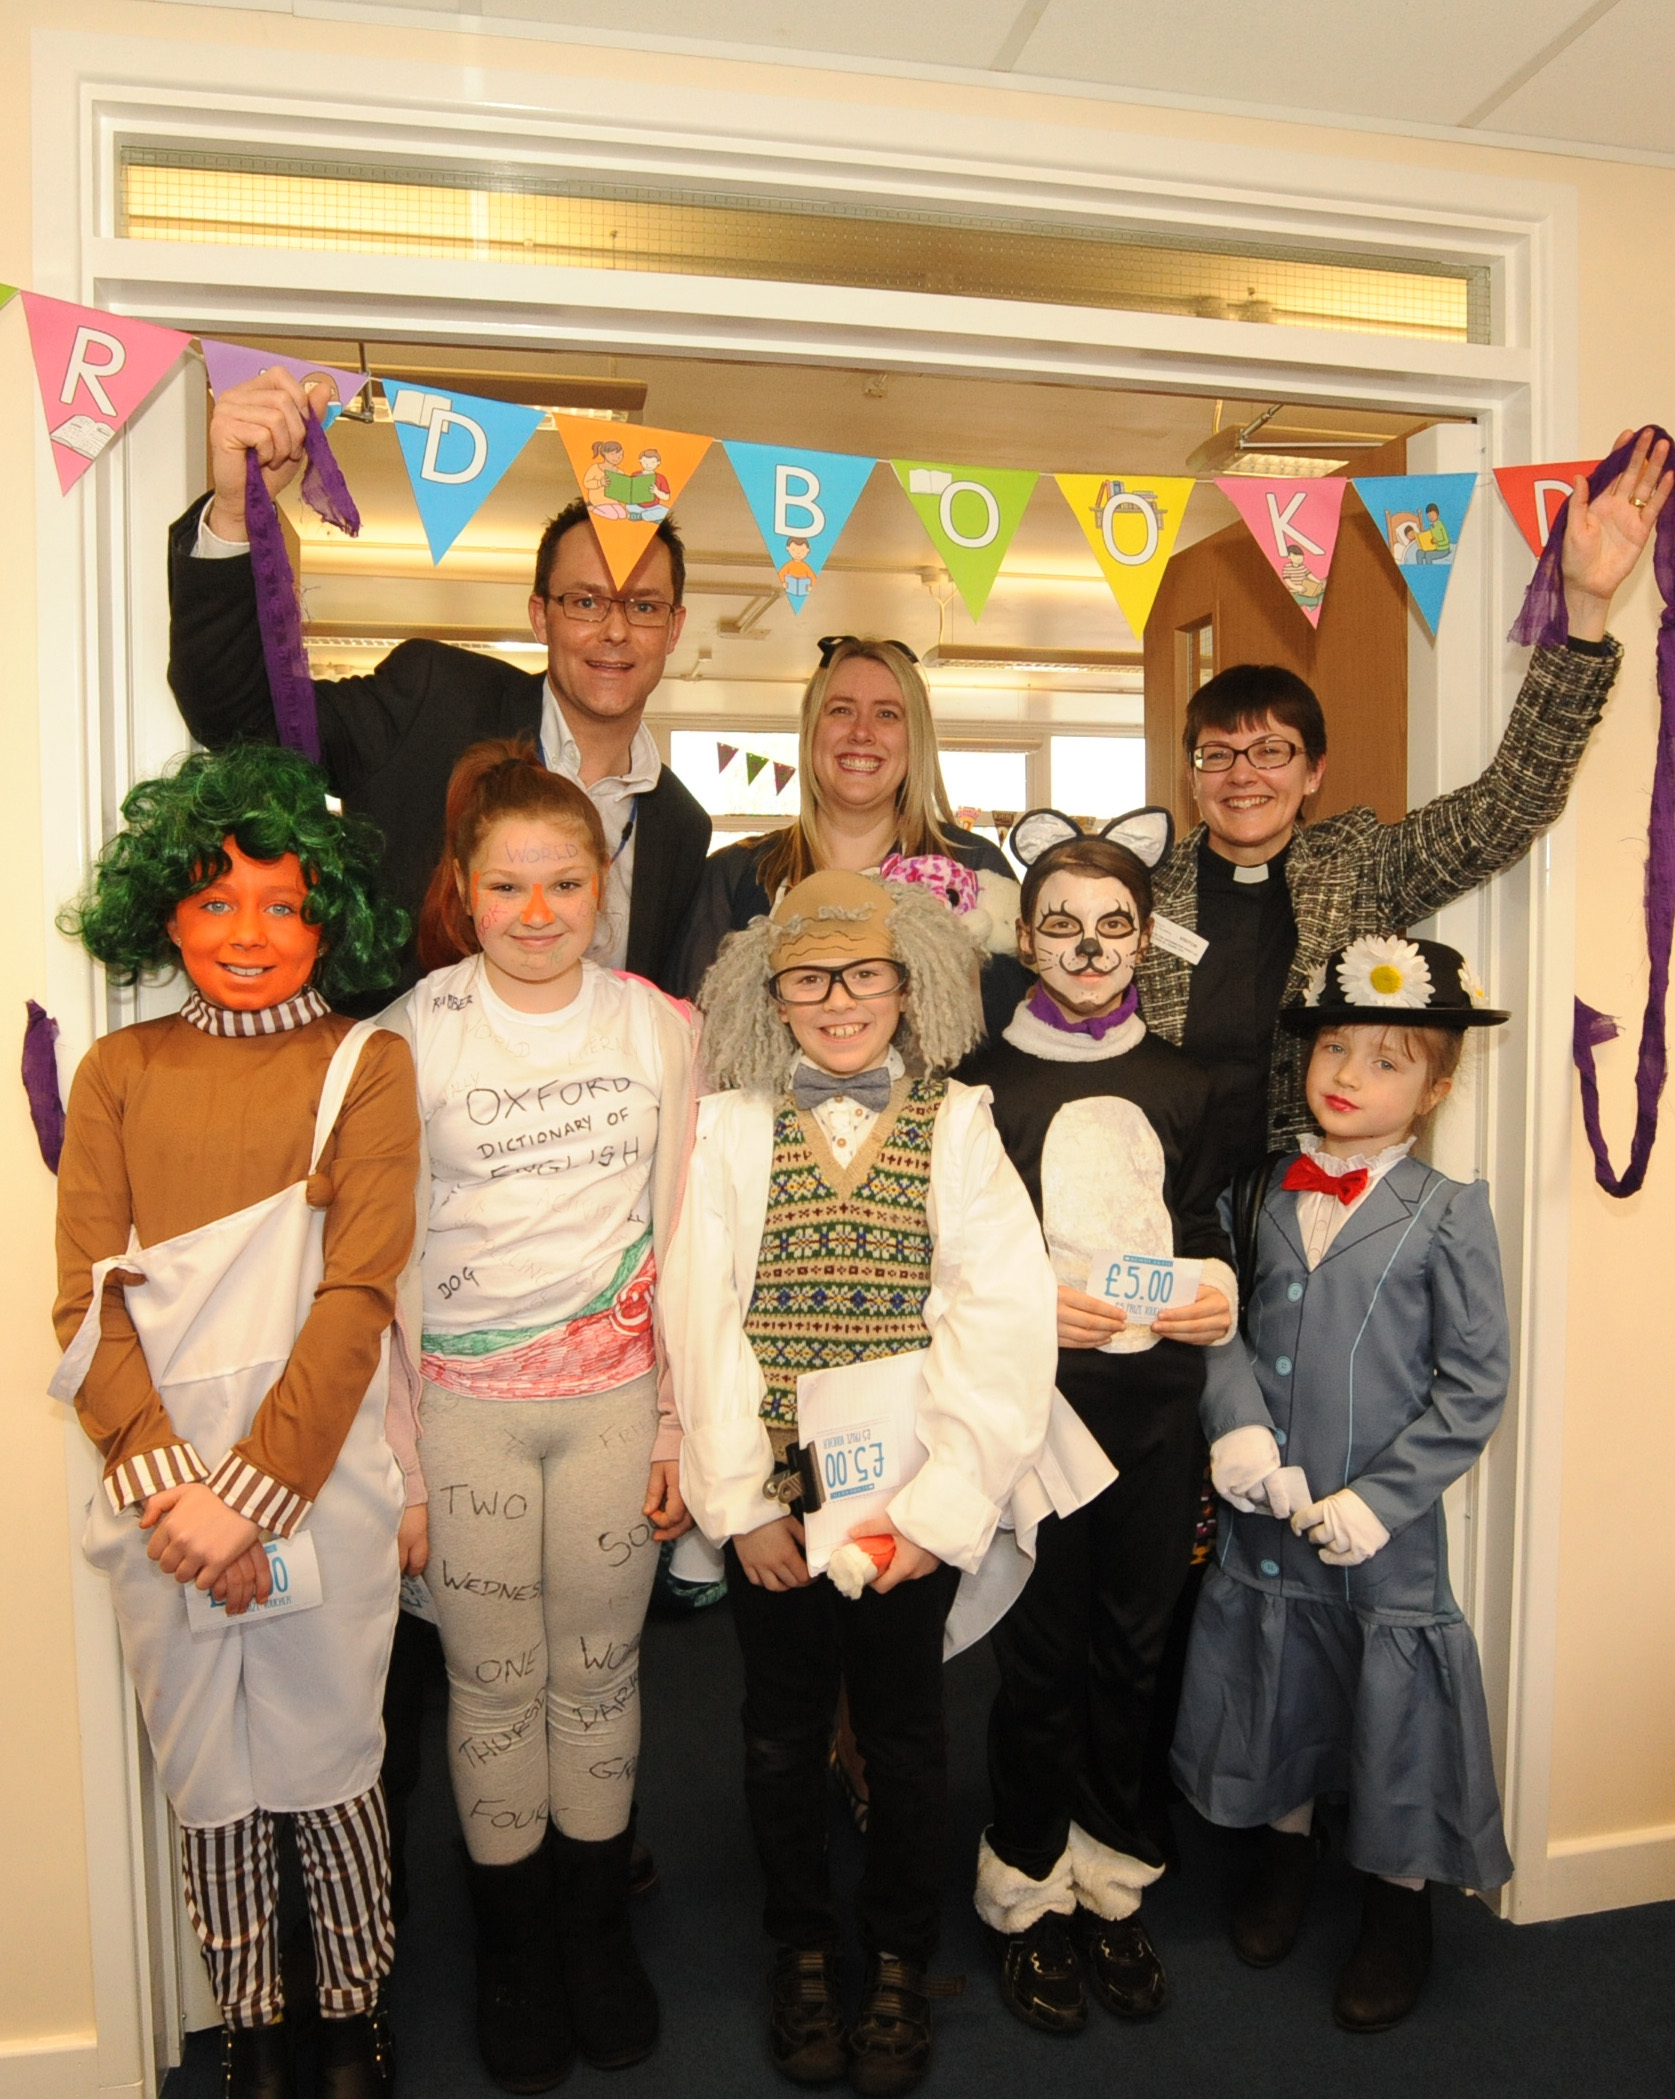 World Book day. Arch Deacon Sue Groom  who cut the ribbon to open the new library at Southbroom St James  academy at Devizes  along with head Nigel Andrews ,  Sarah Byford and voucher winners all dressed as there favourite book character to coincide with